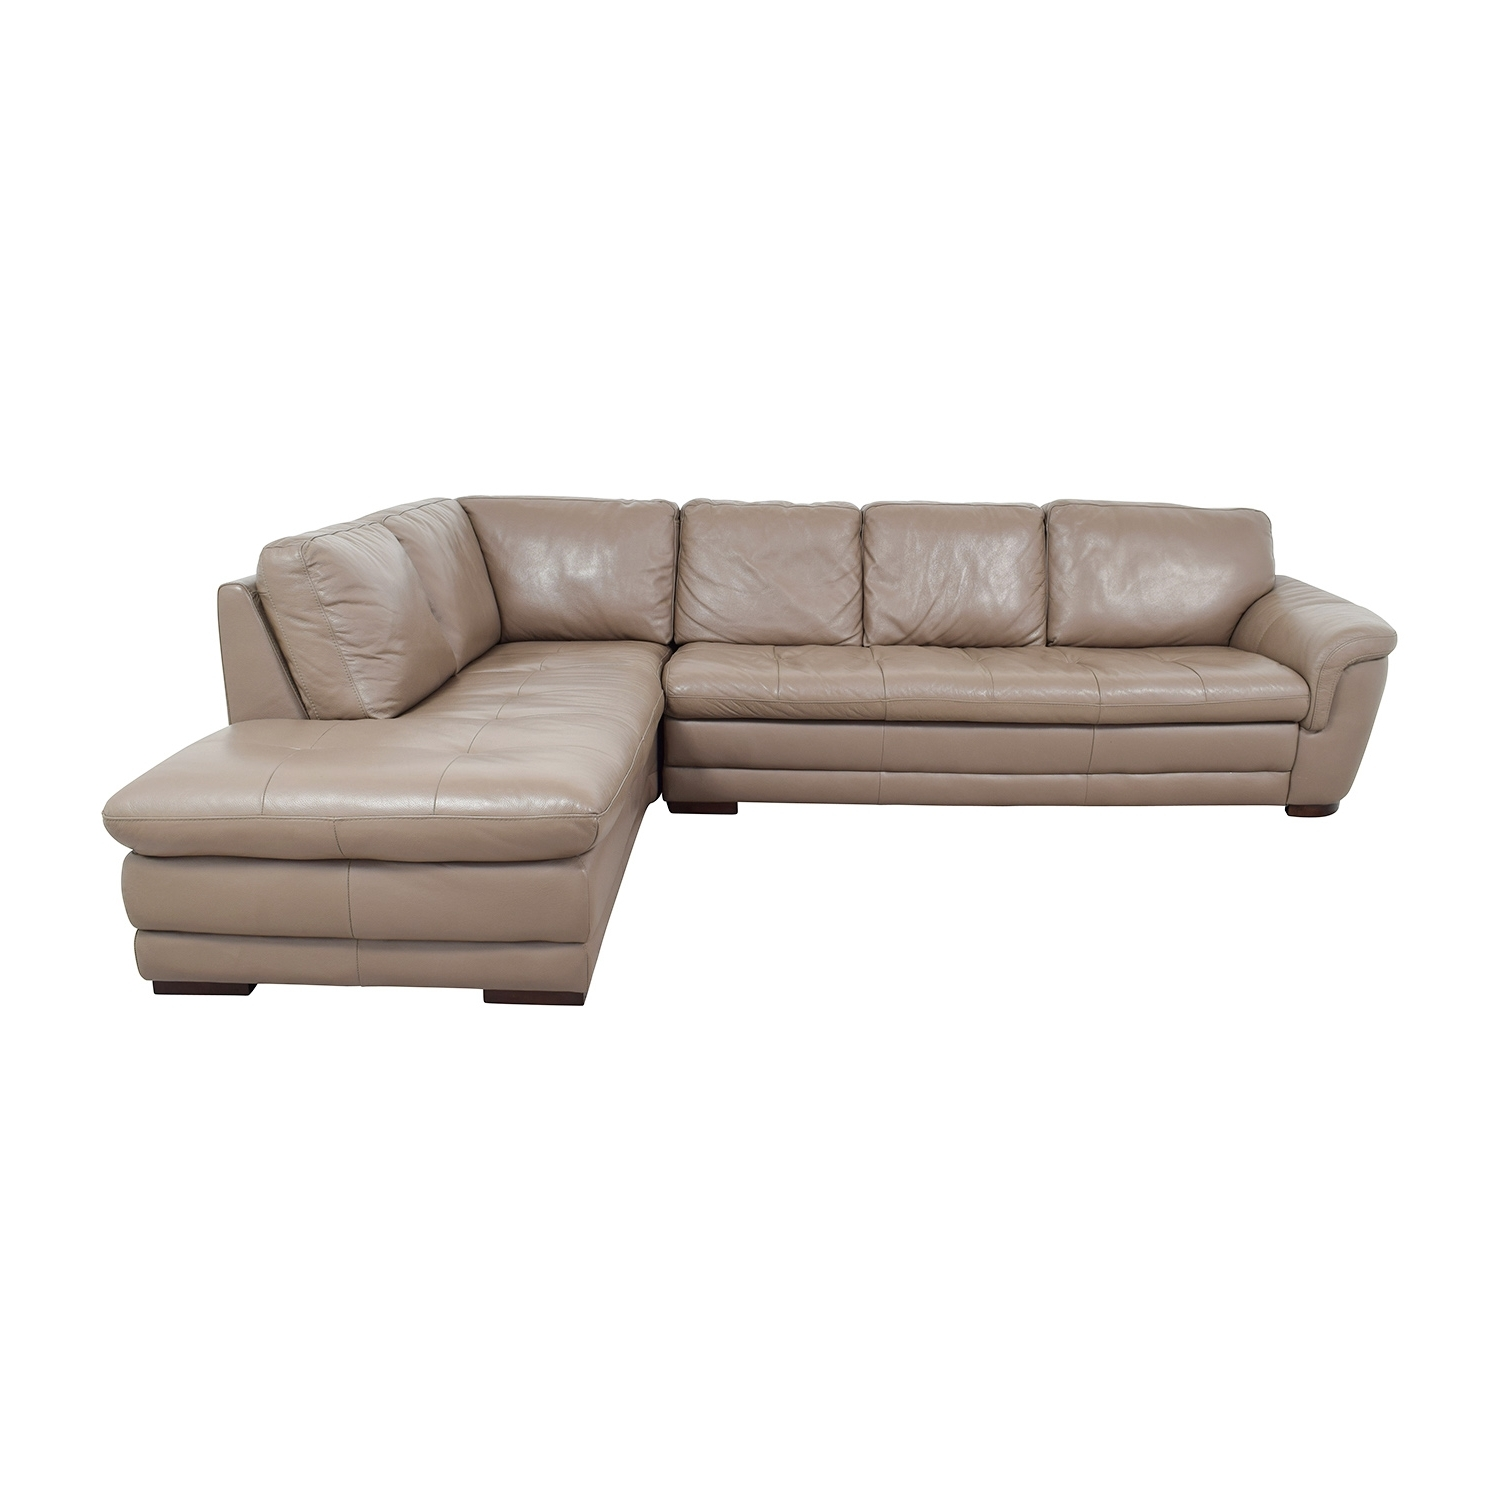 [%74% Off – Raymour And Flanigan Raymour & Flanigan Tan Tufted Intended For 2018 Sectional Sofas At Raymour And Flanigan|Sectional Sofas At Raymour And Flanigan For Preferred 74% Off – Raymour And Flanigan Raymour & Flanigan Tan Tufted|Recent Sectional Sofas At Raymour And Flanigan In 74% Off – Raymour And Flanigan Raymour & Flanigan Tan Tufted|Well Known 74% Off – Raymour And Flanigan Raymour & Flanigan Tan Tufted With Sectional Sofas At Raymour And Flanigan%] (View 6 of 15)